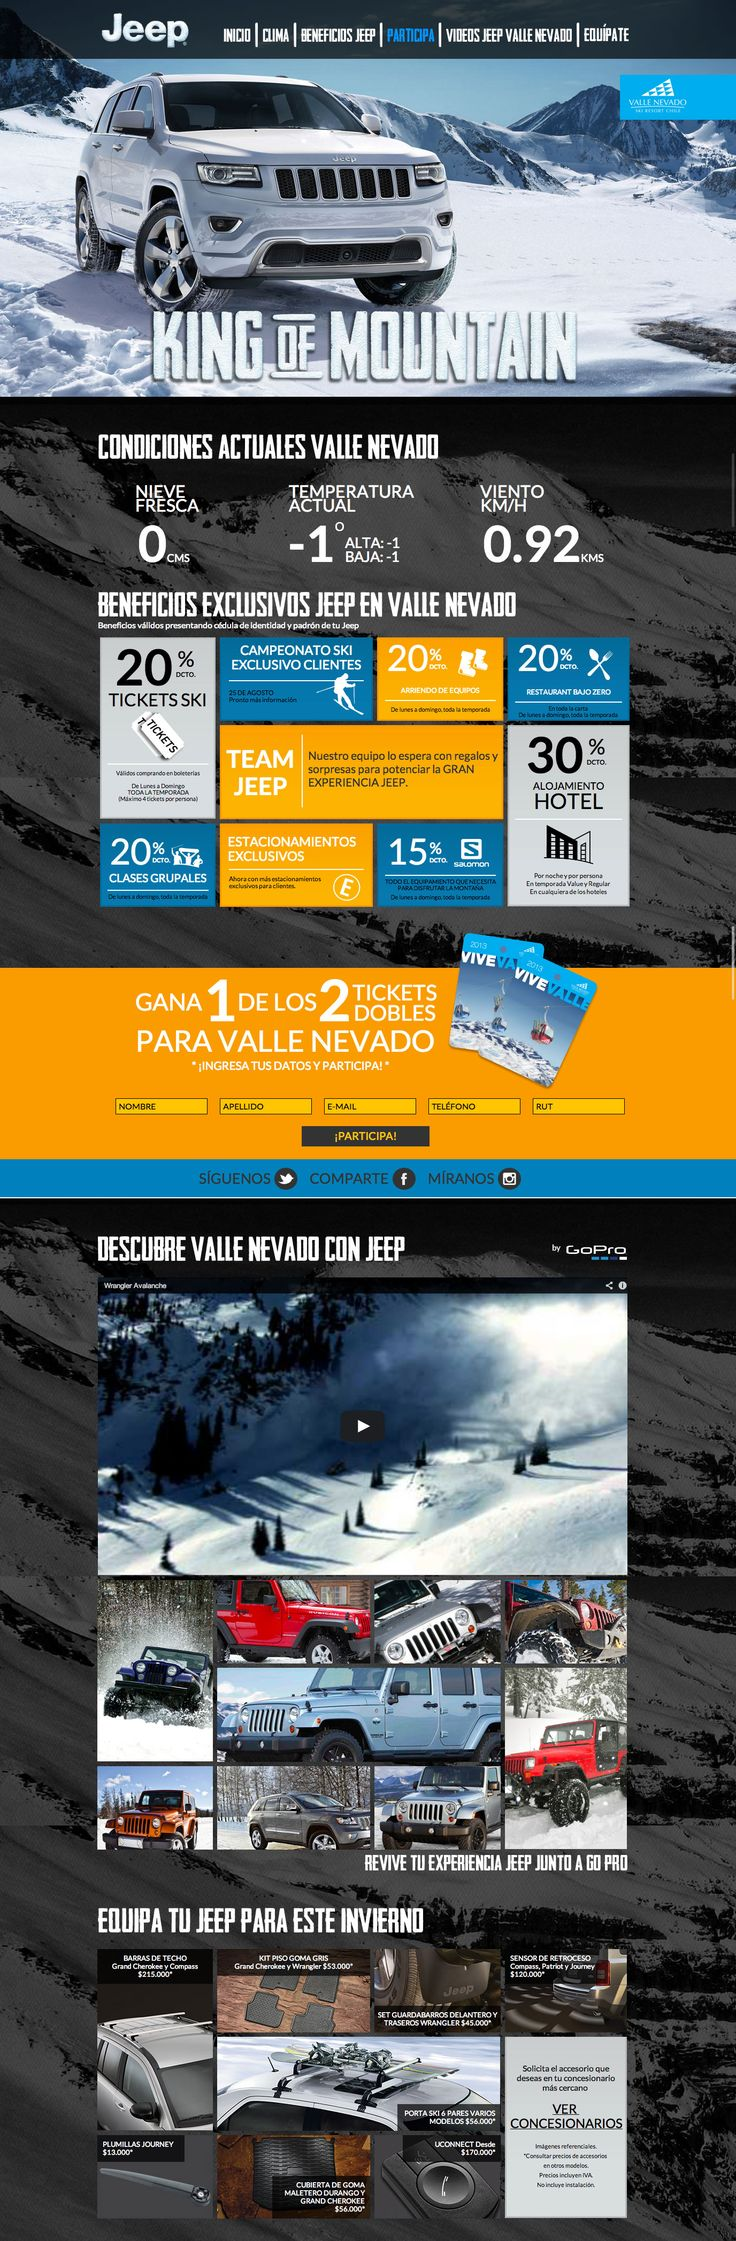 "Responsive one pager with the purpose of creating an environment for ""Invierno Jeep"" - what an an incredible into image, even on big screens."